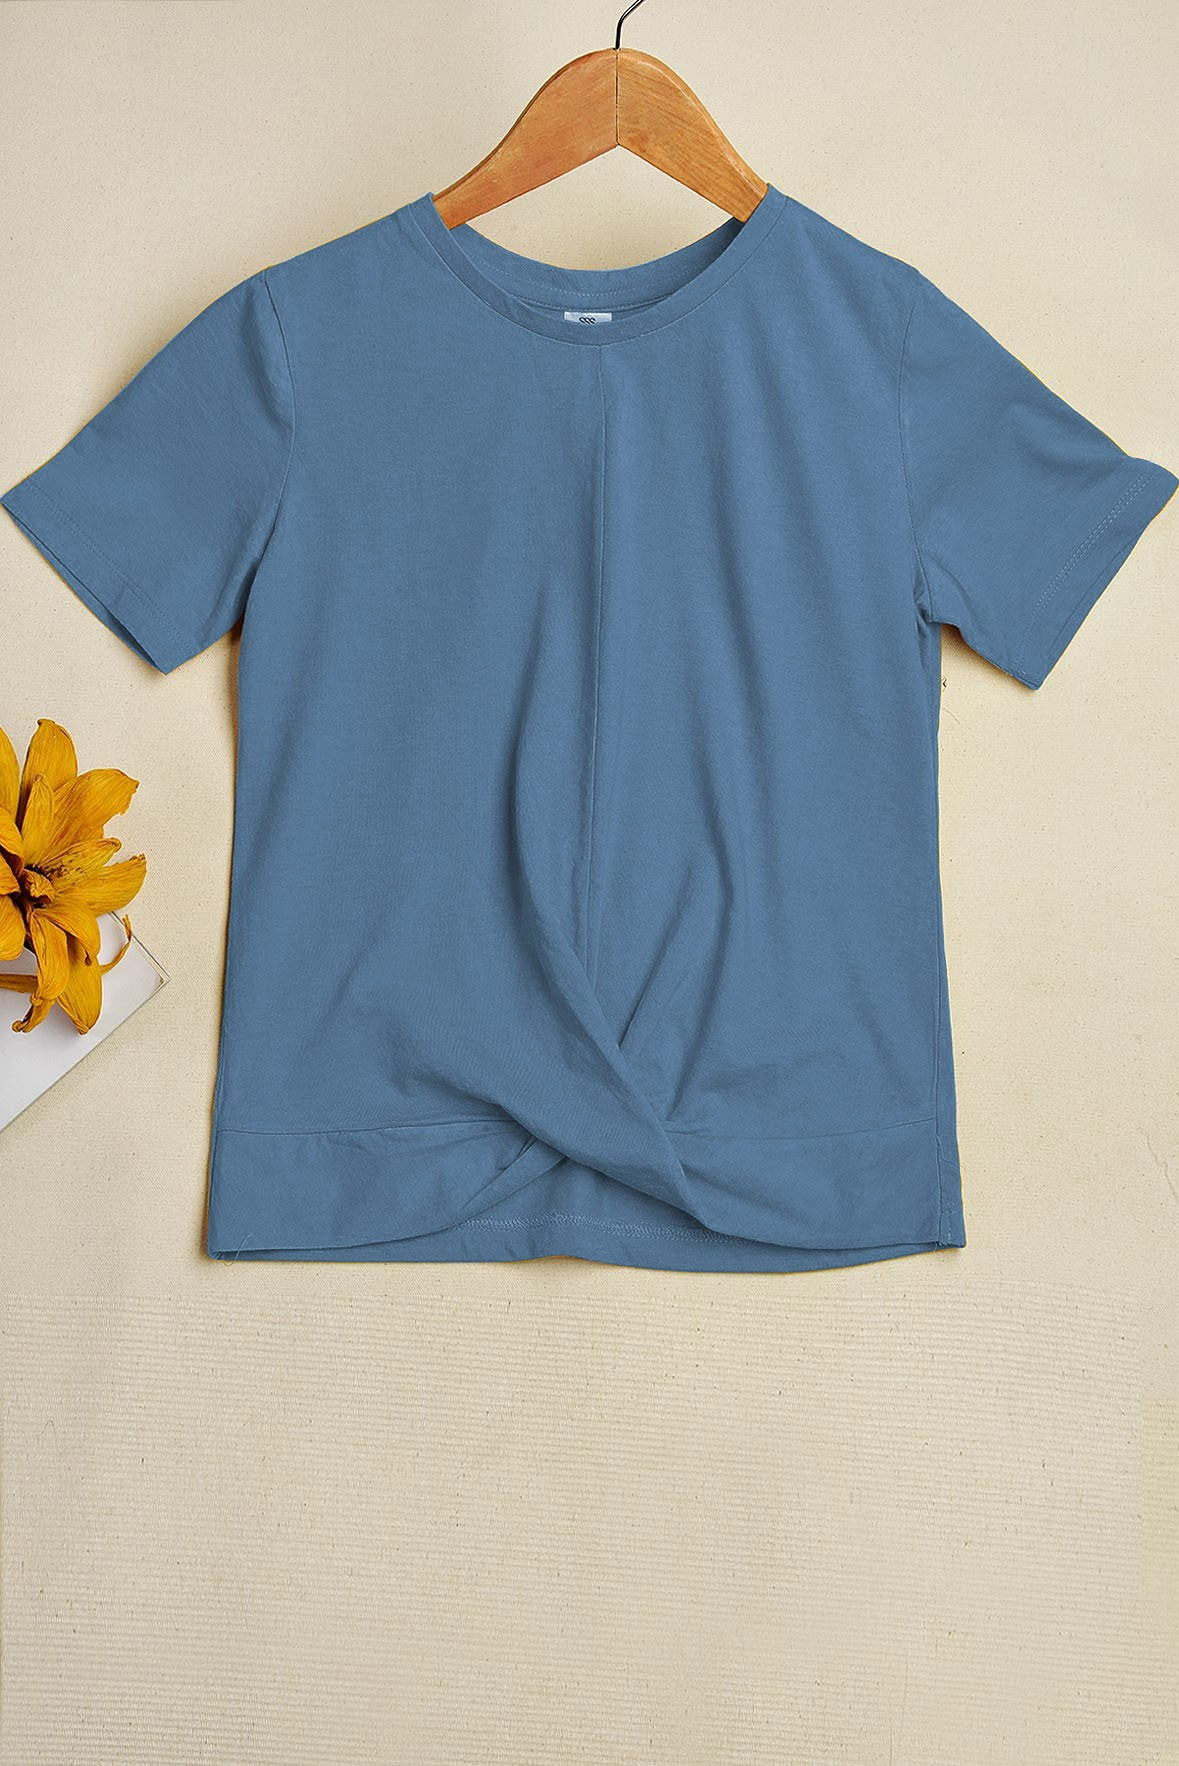 Around The Corner Blue T-shirt